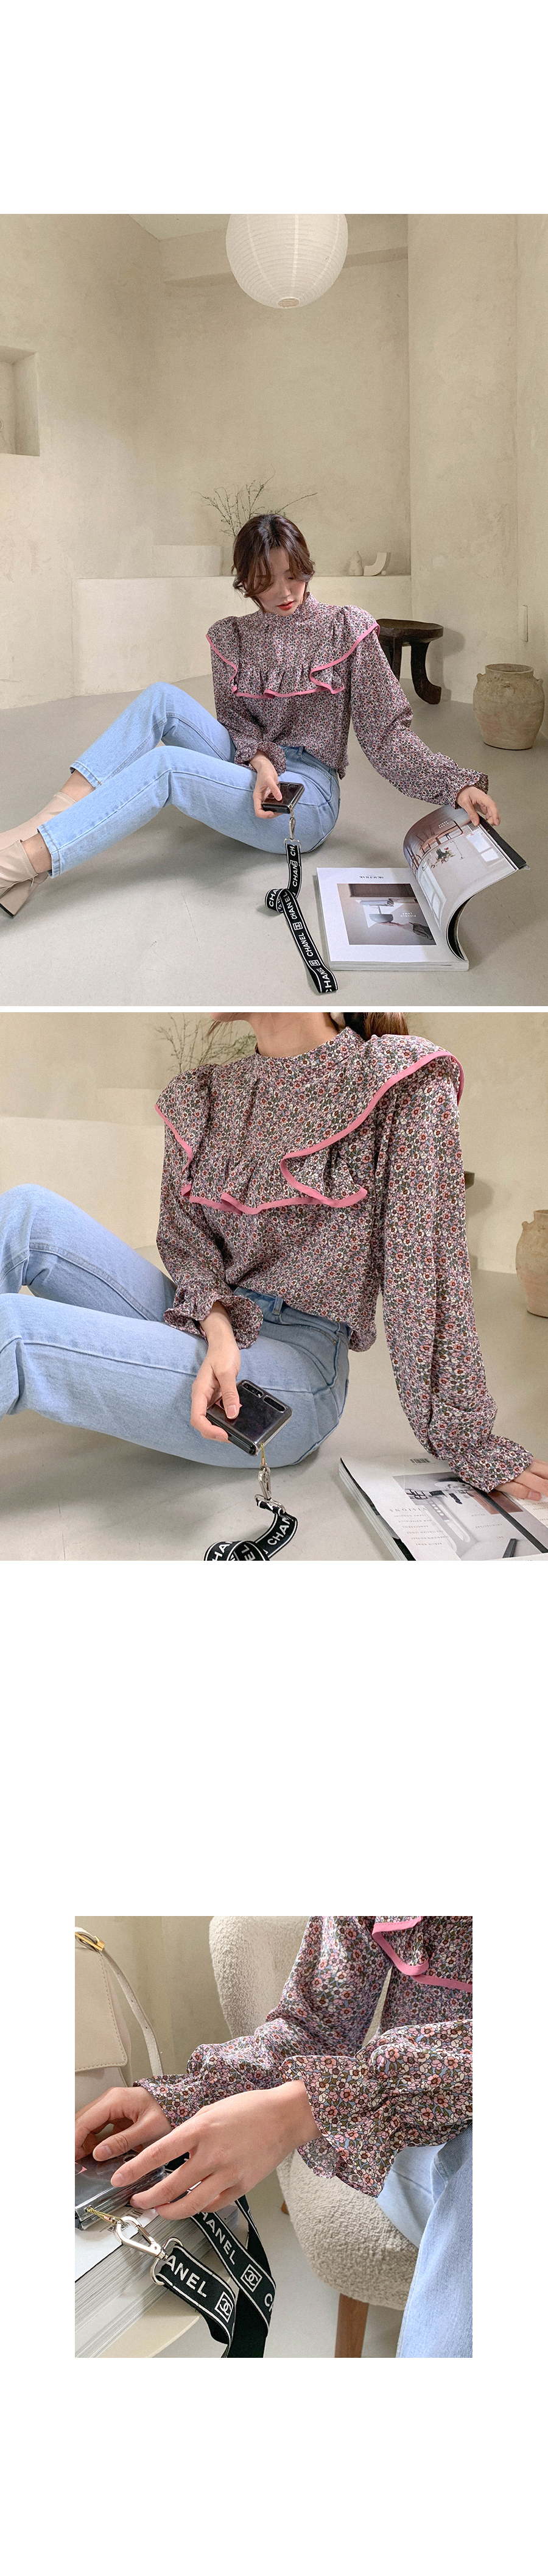 Flowers bloom or color matching frill blouse